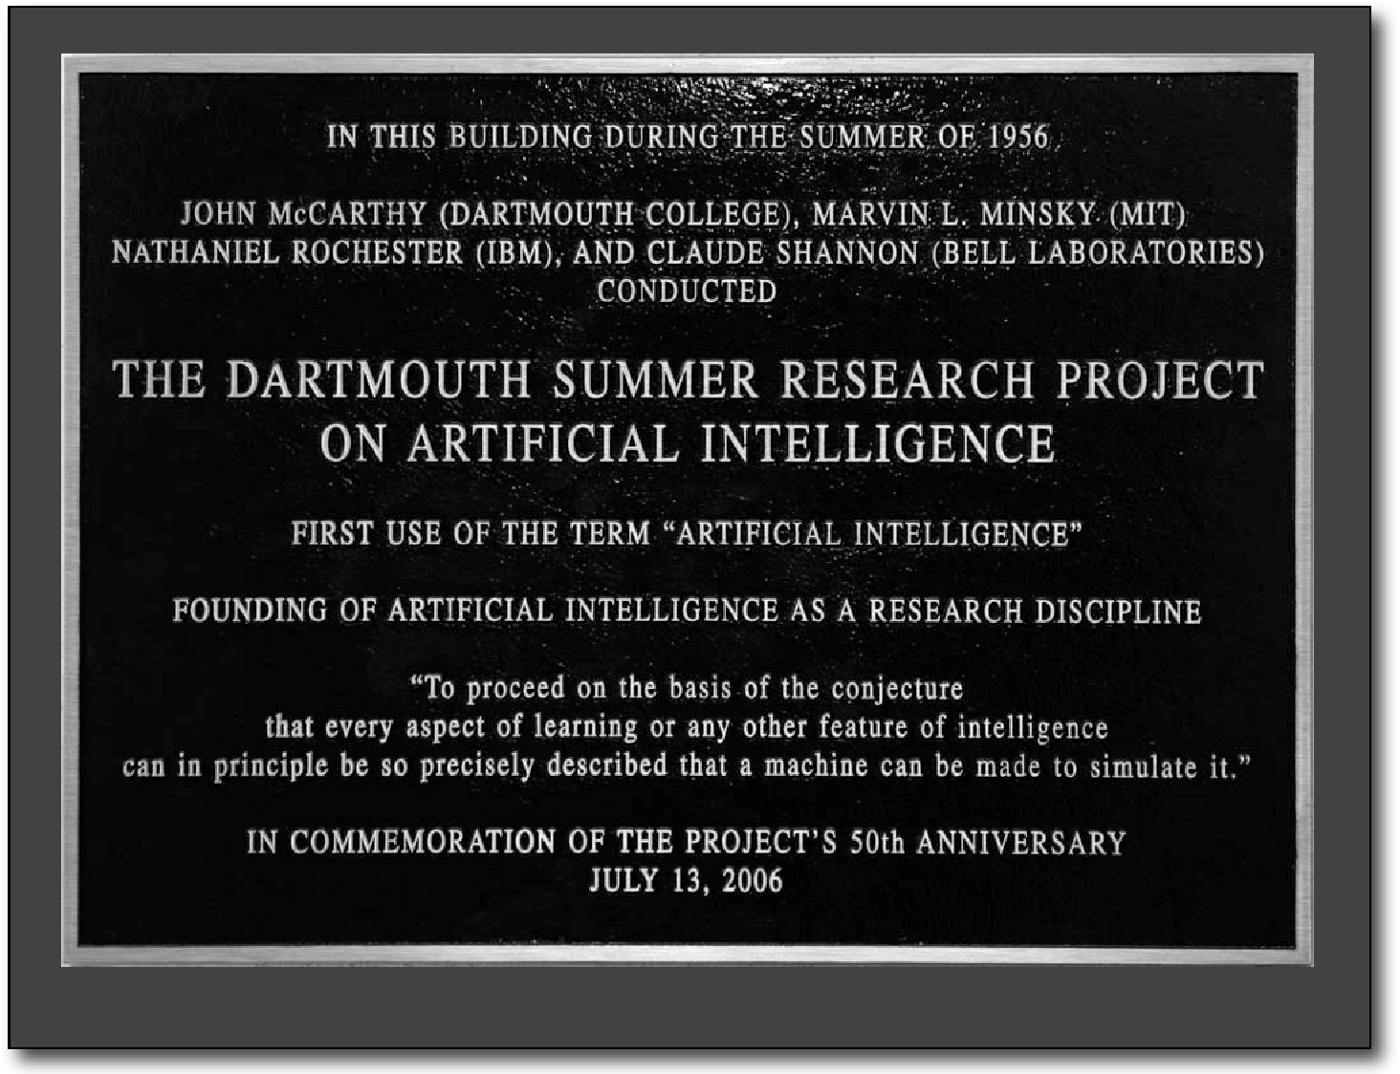 History of AI - The 1956 Dartmouth Workshop